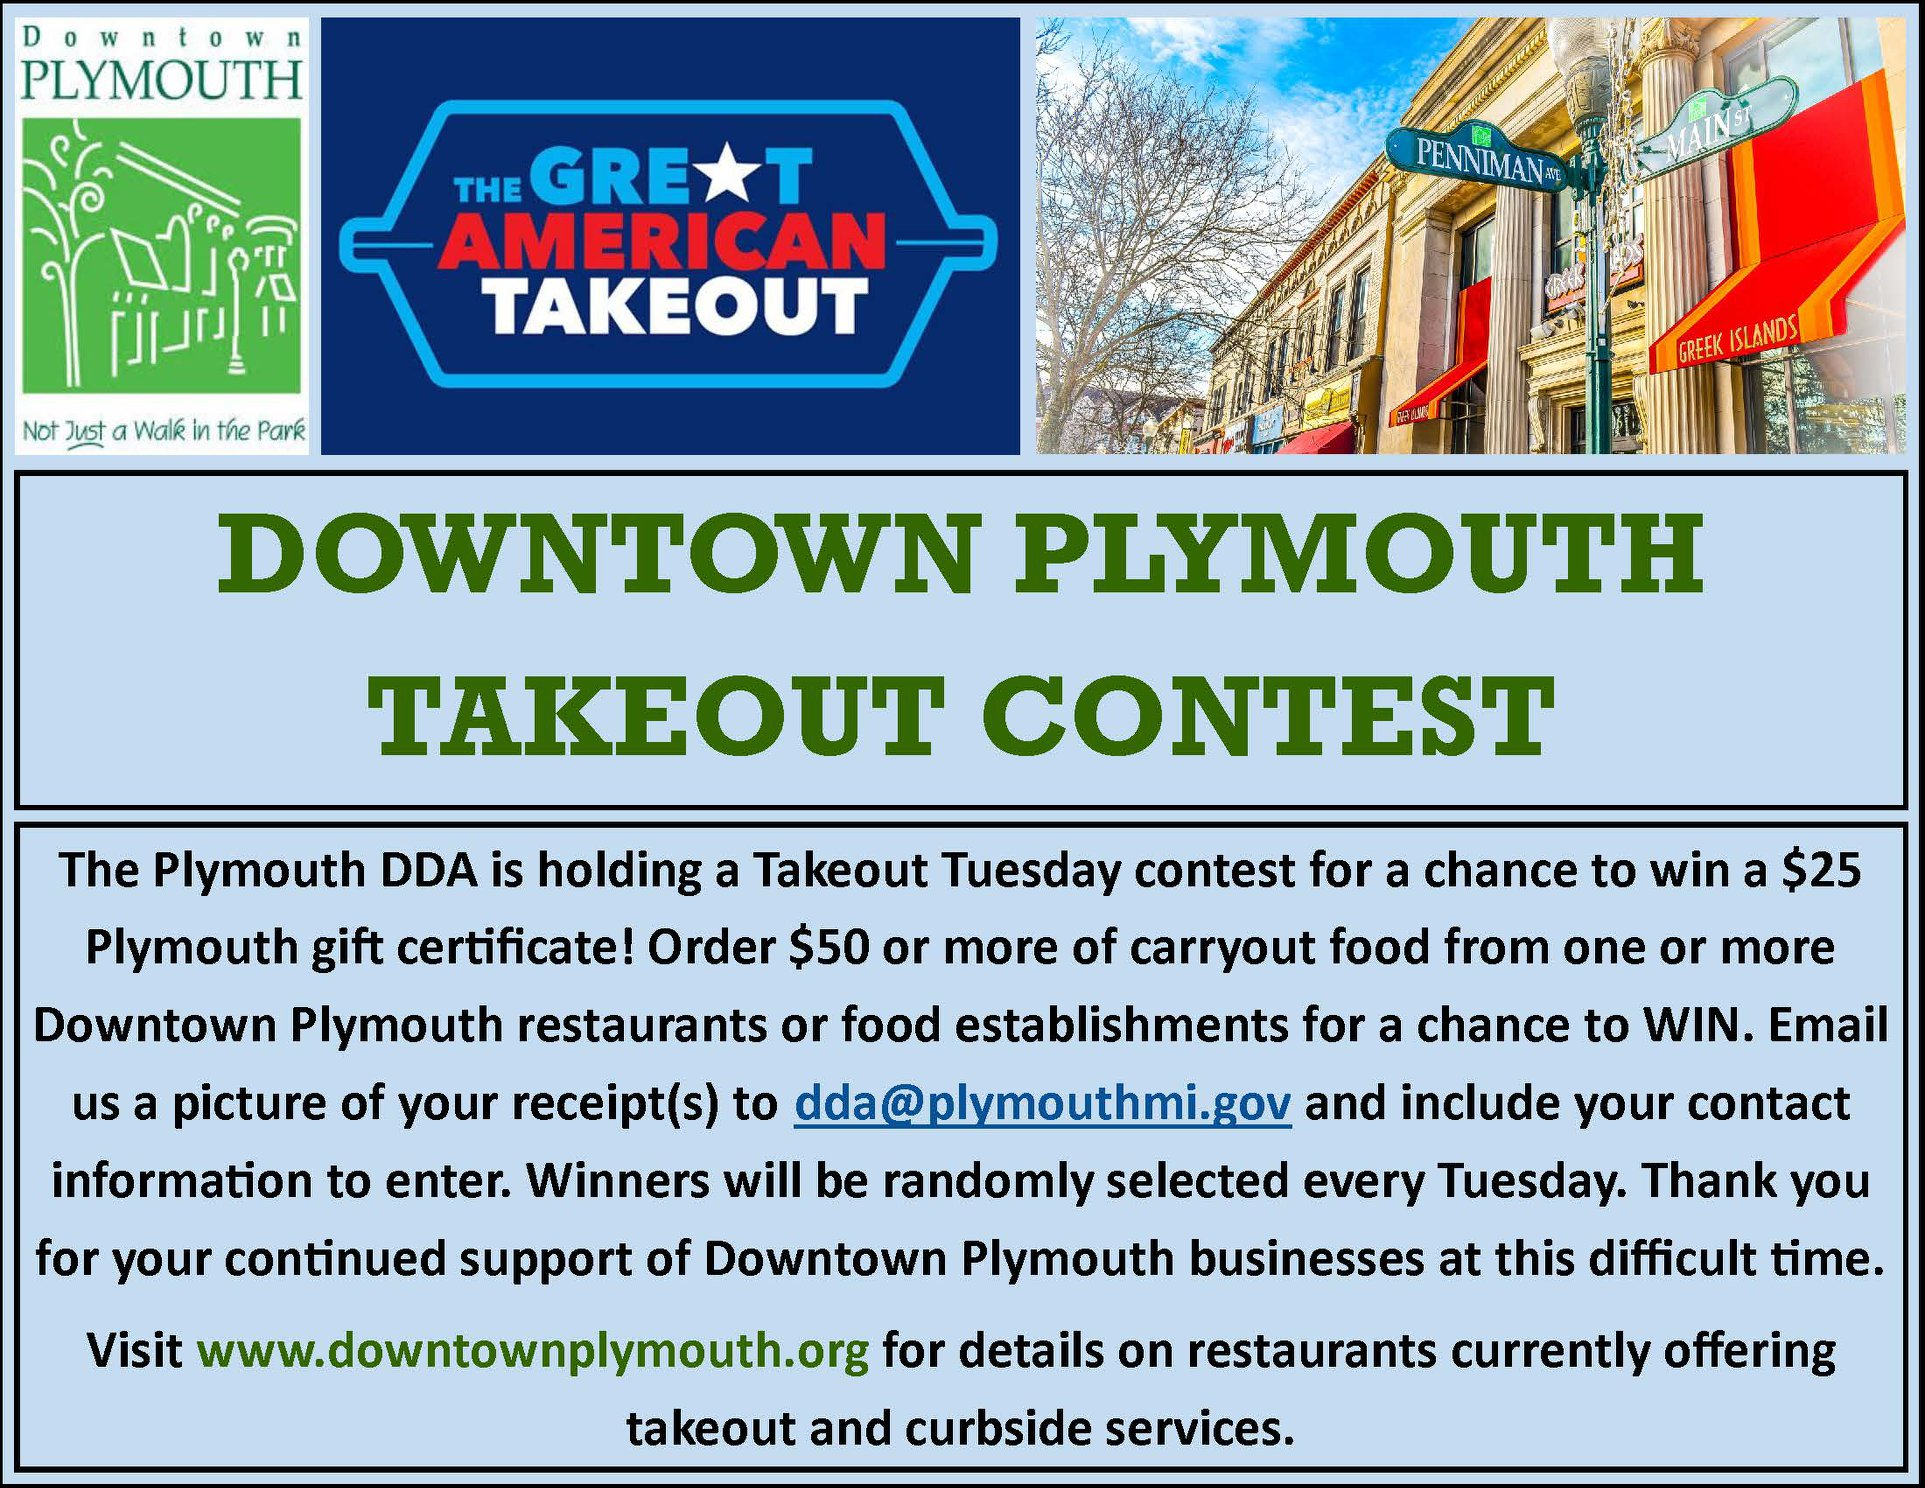 takeout tuesday contest info